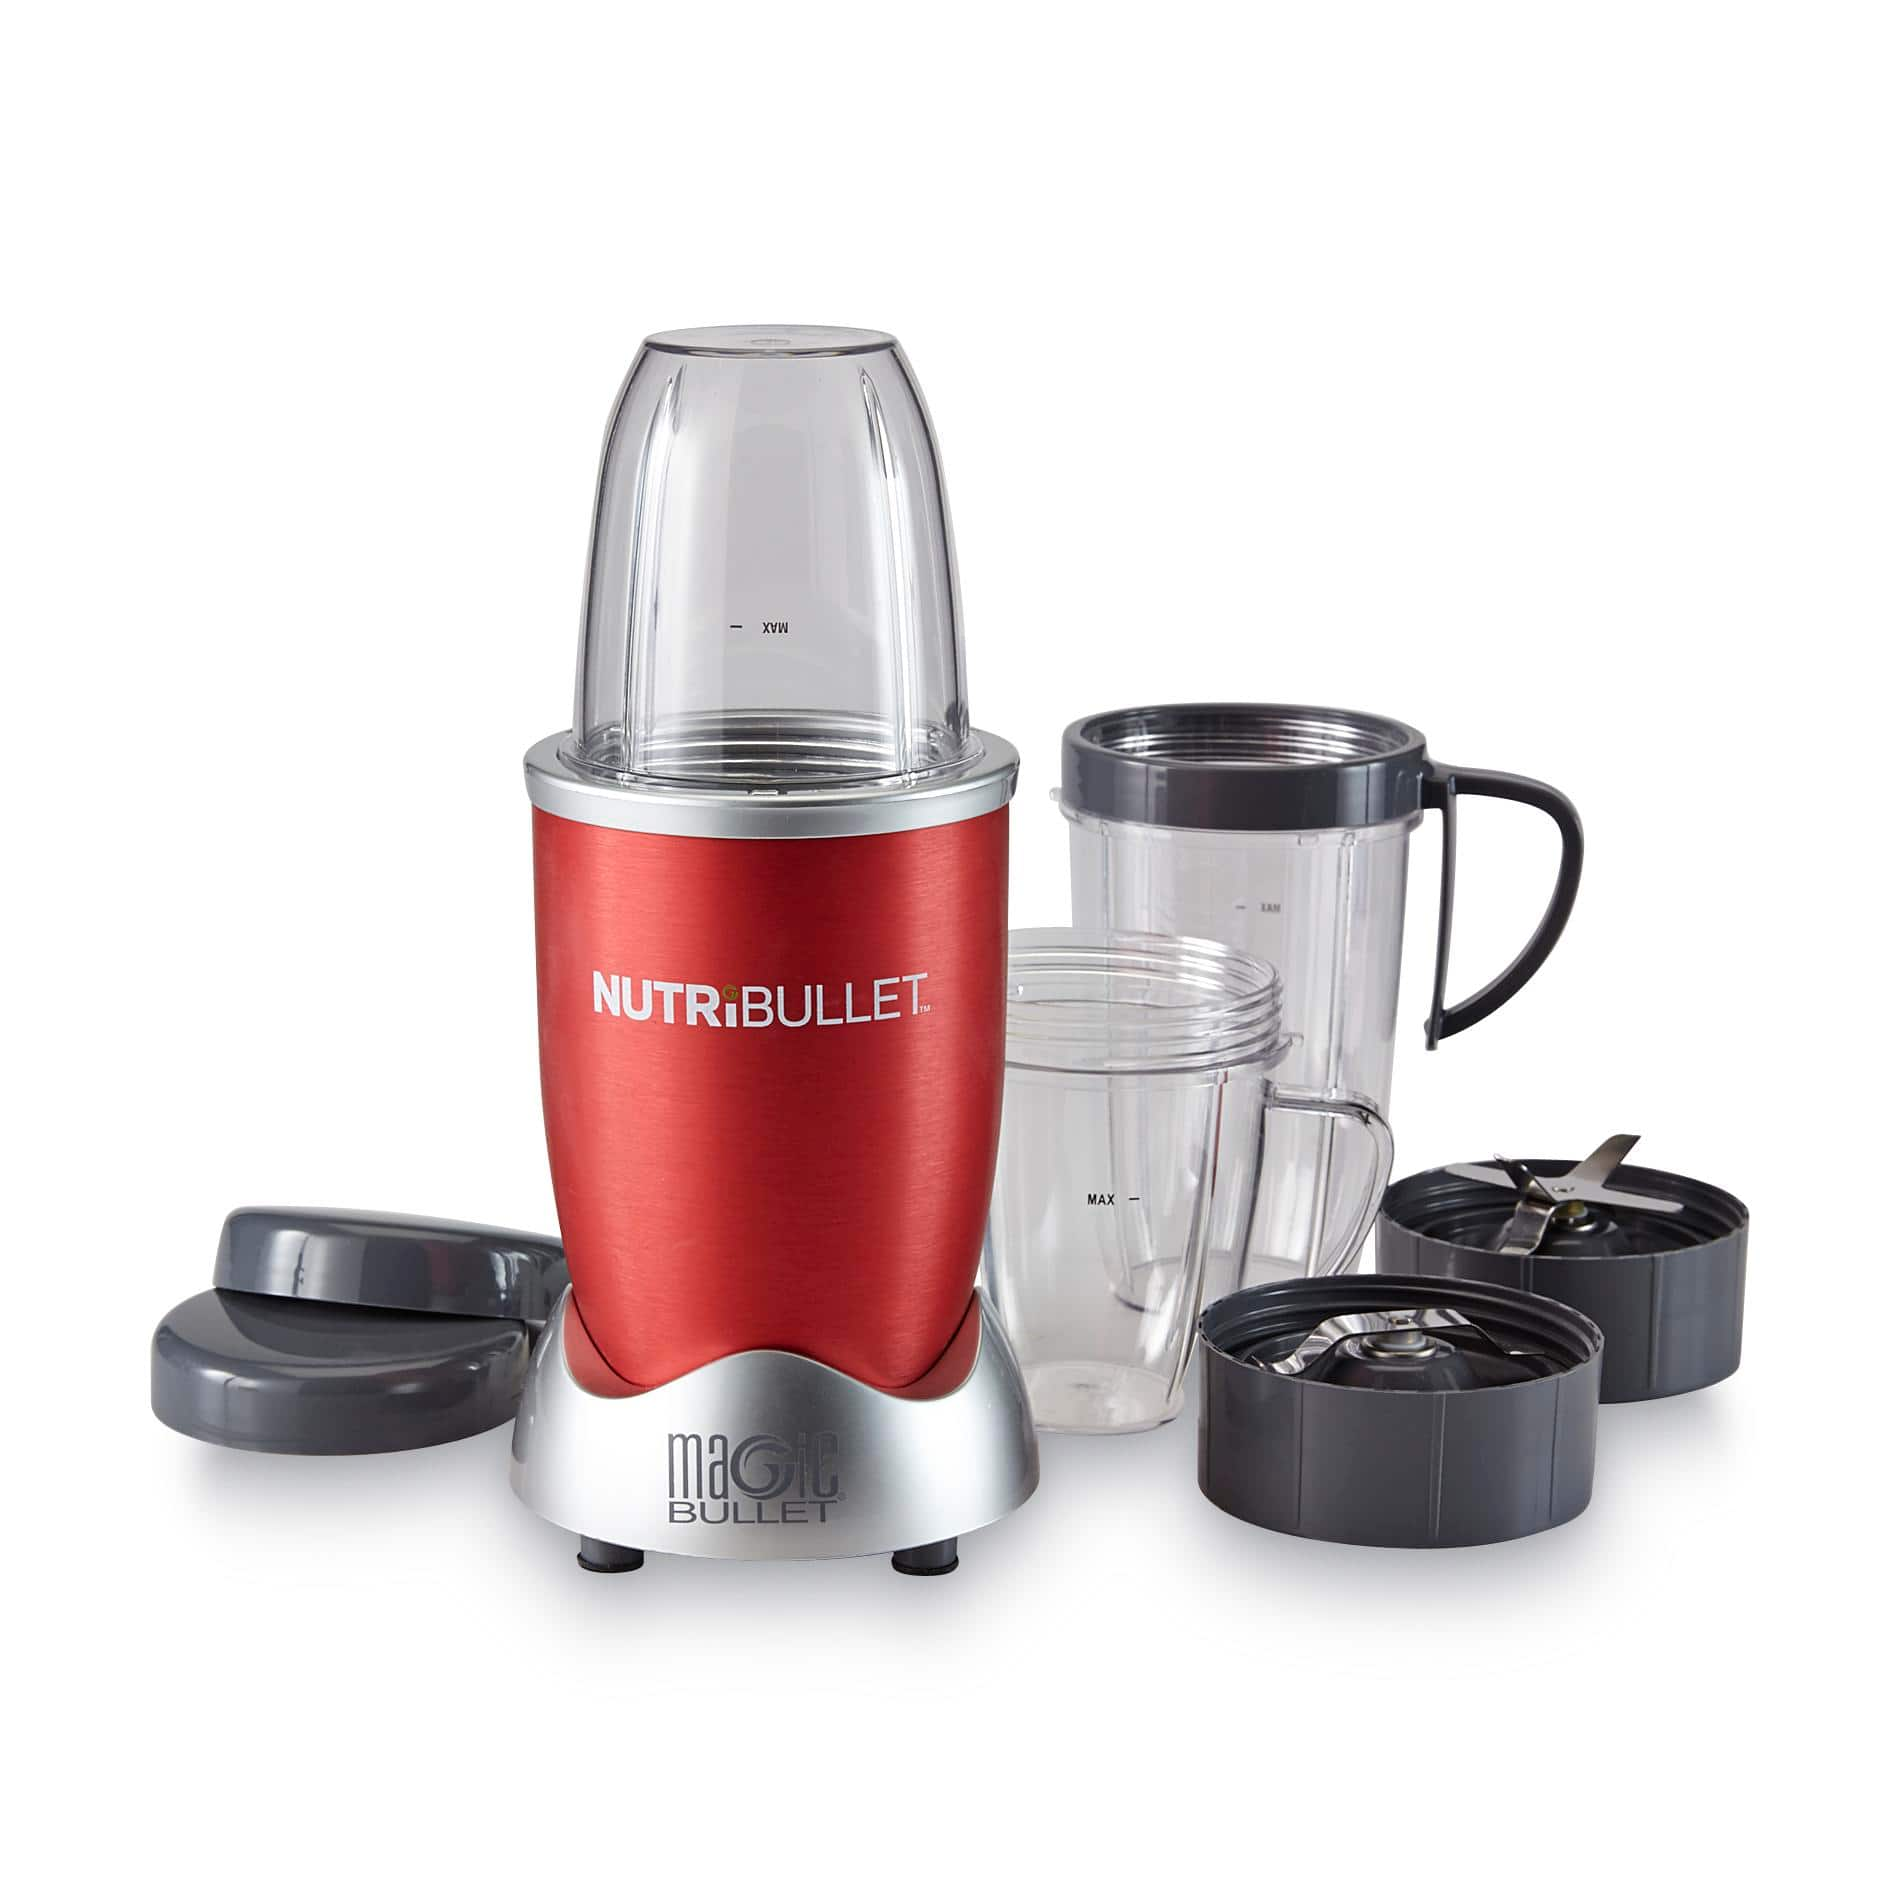 NutriBullet 8-Piece Nutrition Blender/Extractor Set + at least $20 in points for $65